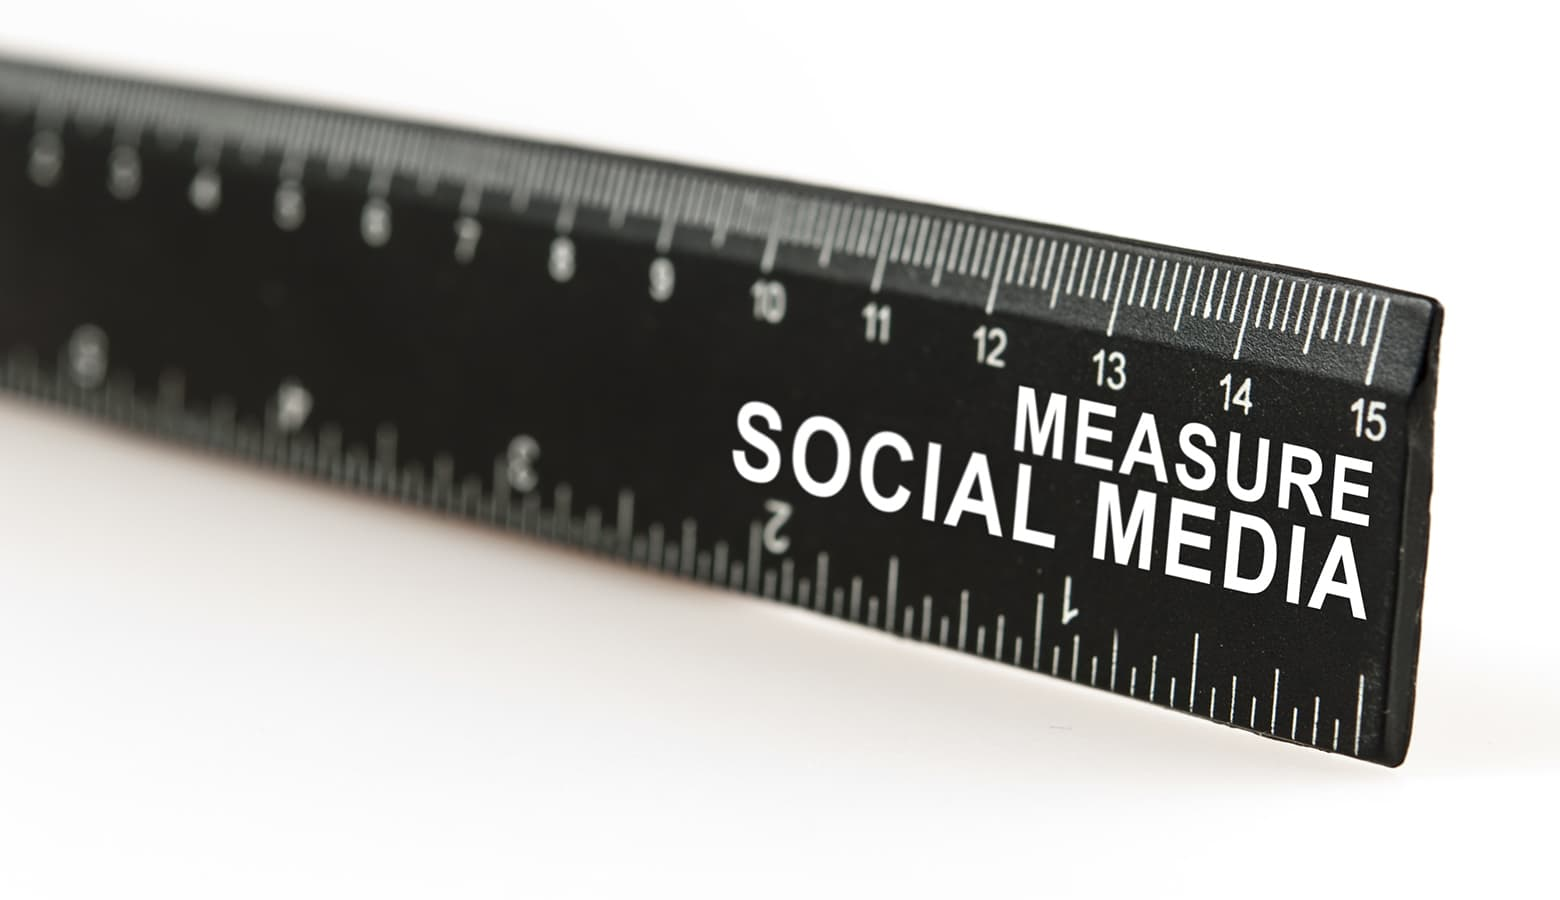 Measuring success on social media